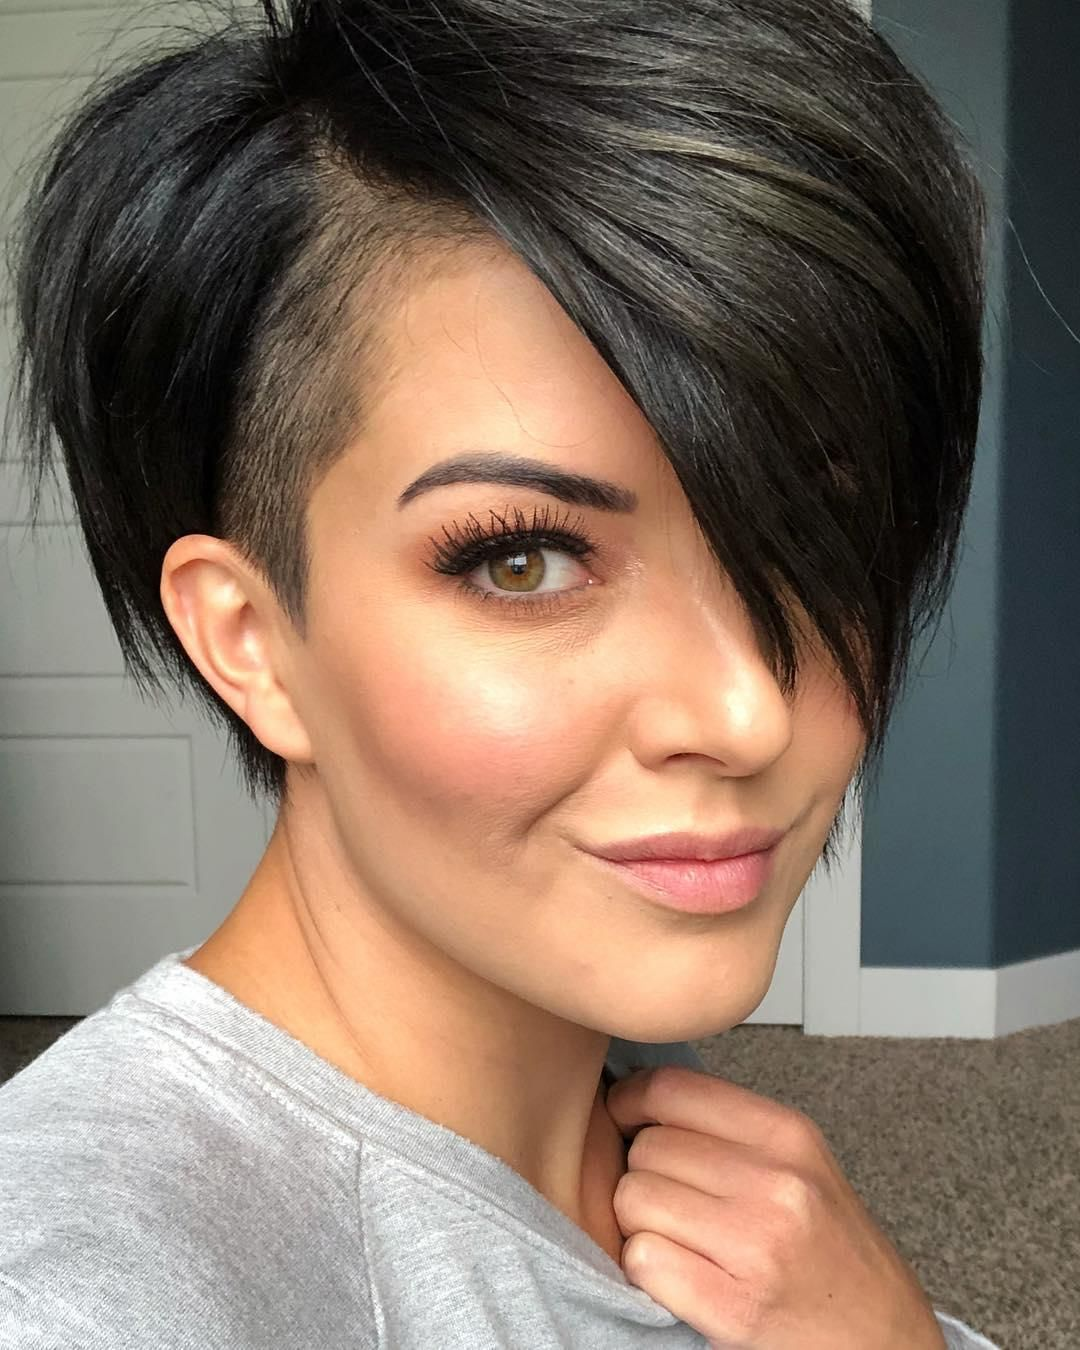 50 Best Short Hairstyles And Haircuts To Make You Feel Special In 2021 In 2020 Thick Hair Styles Haircut For Thick Hair Straight Hairstyles